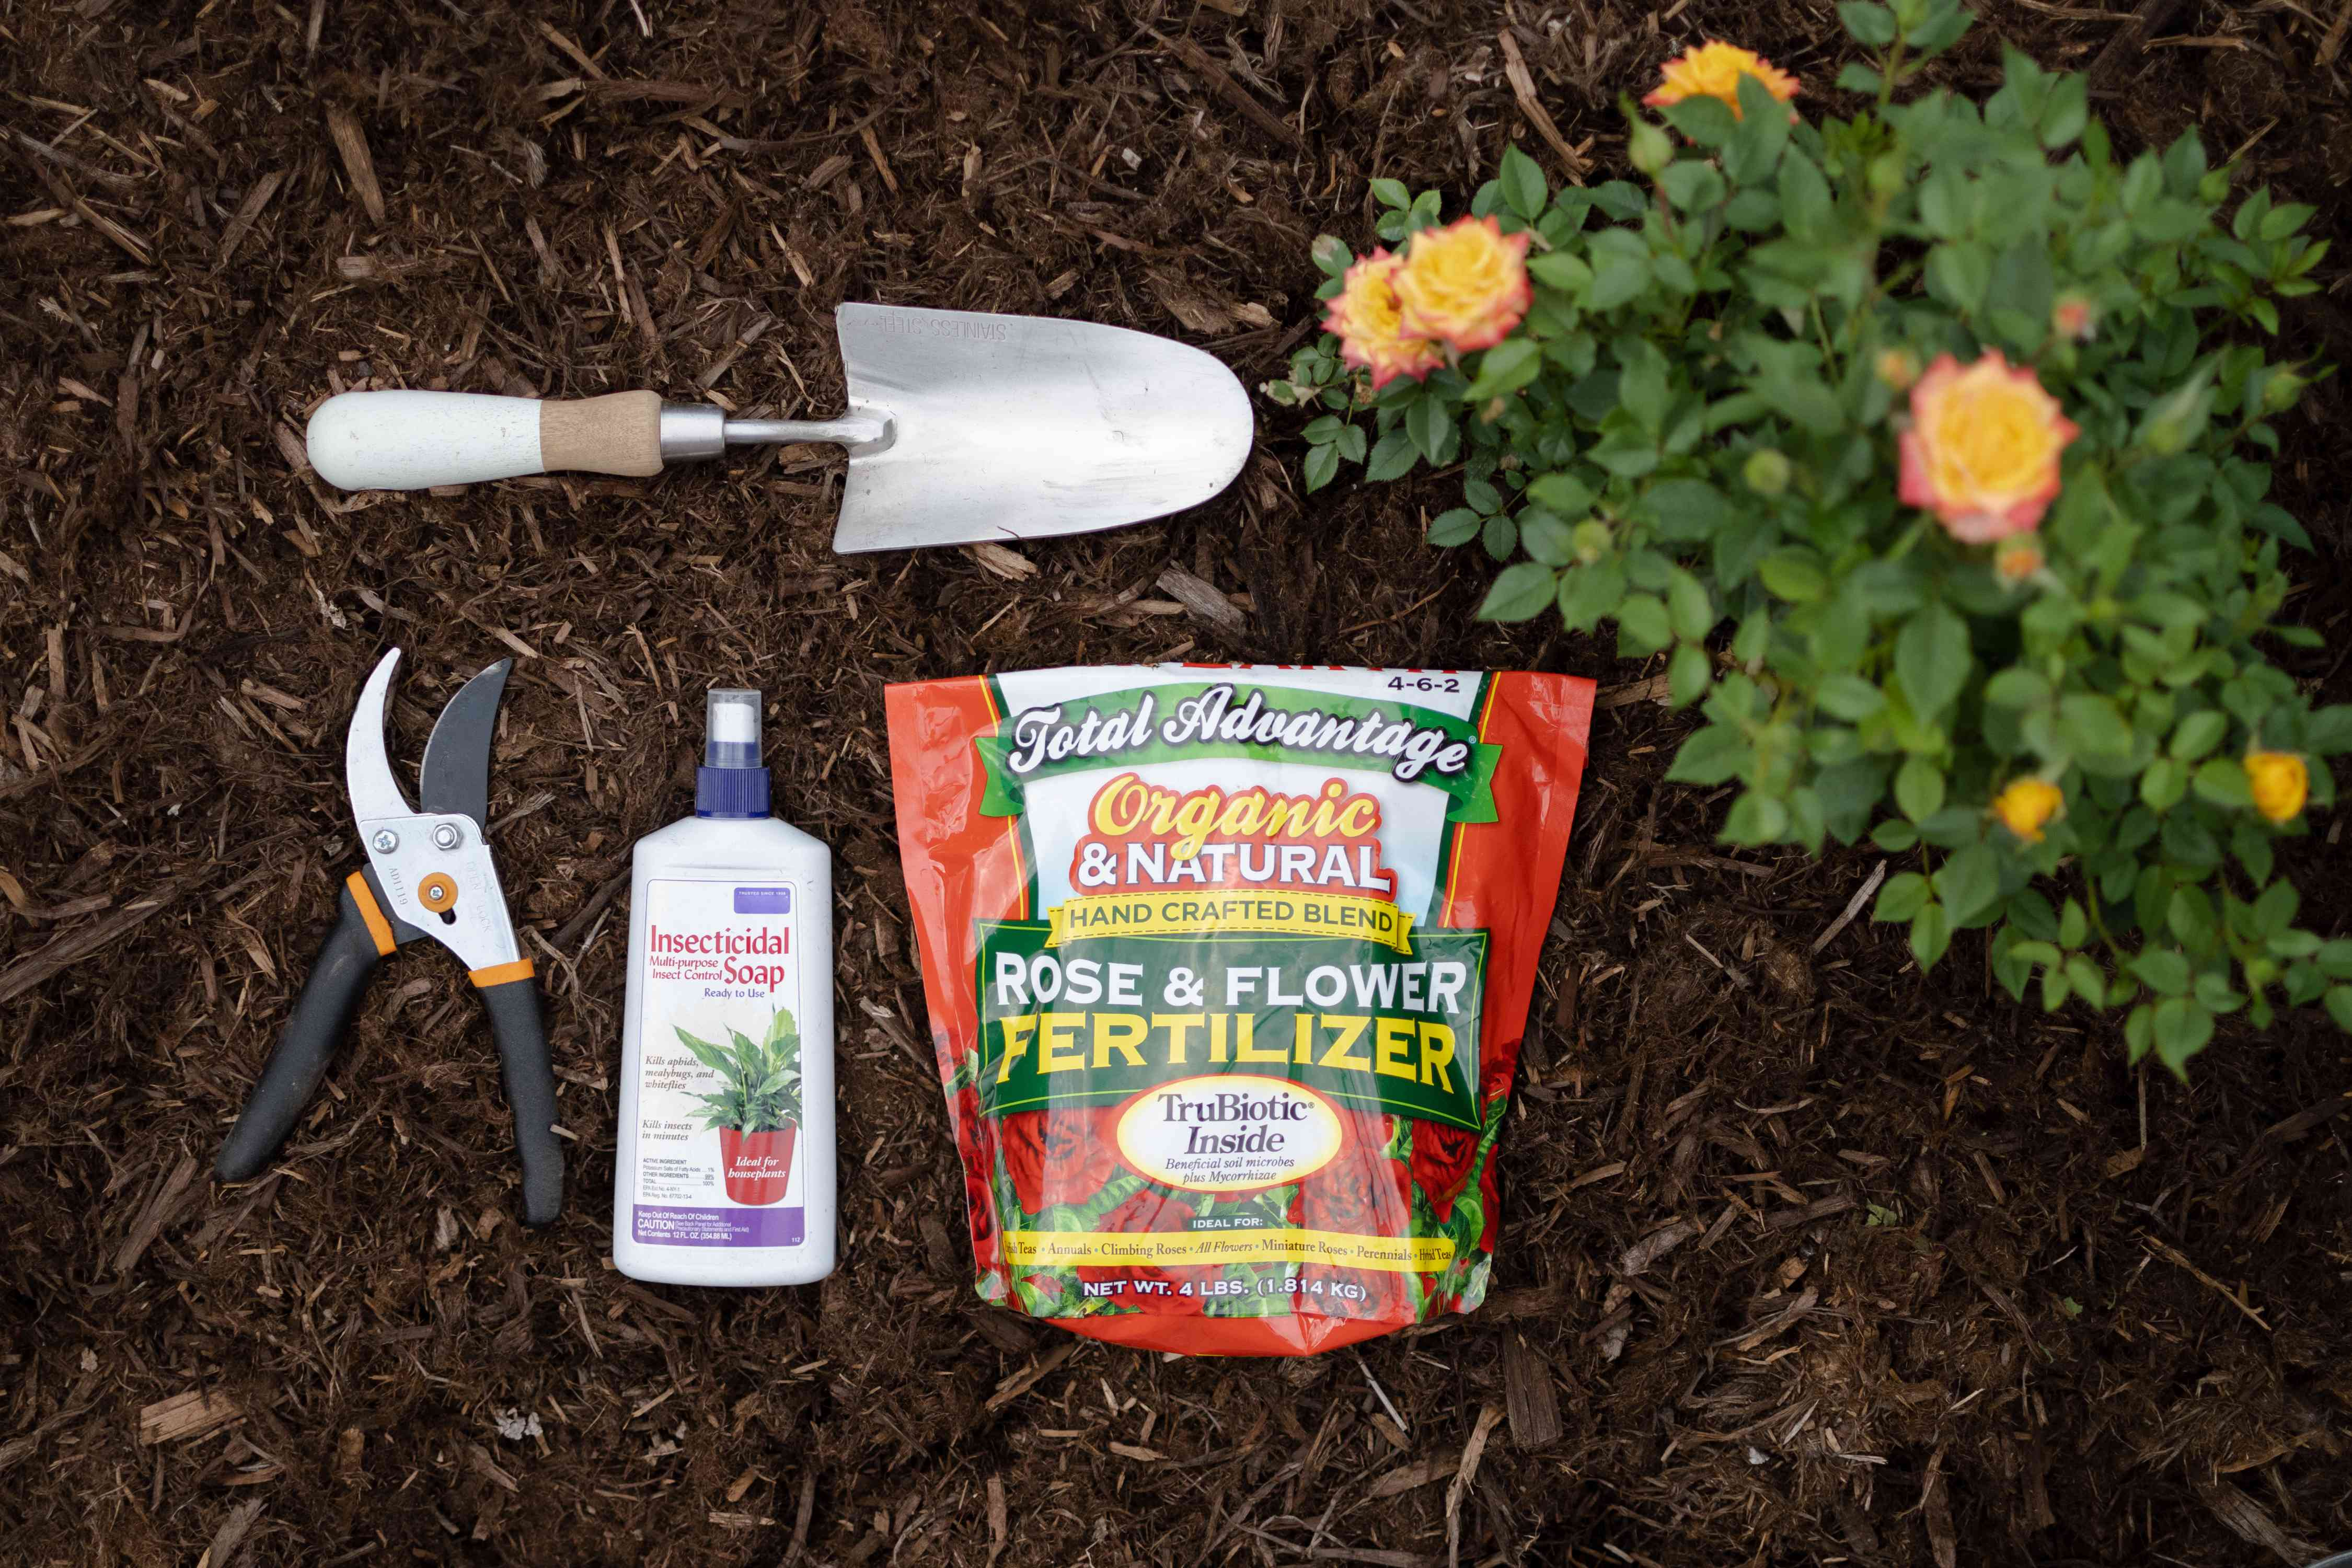 Materials and tools to get more blooms from roses